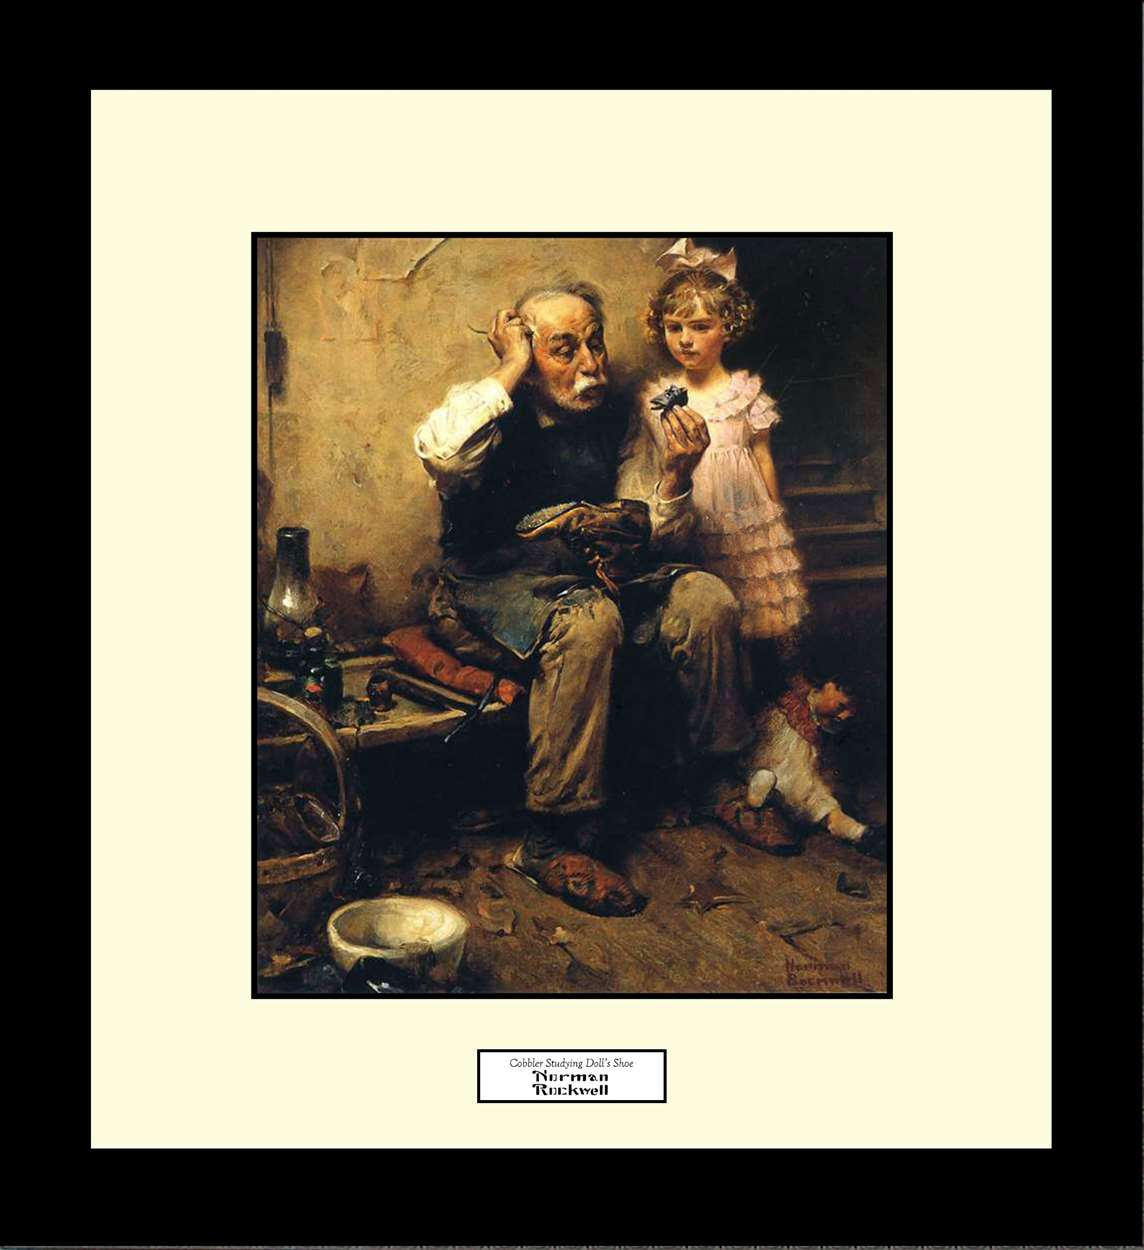 Cobbler Studying Doll's Shoe, Norman Rockwell, 16x18